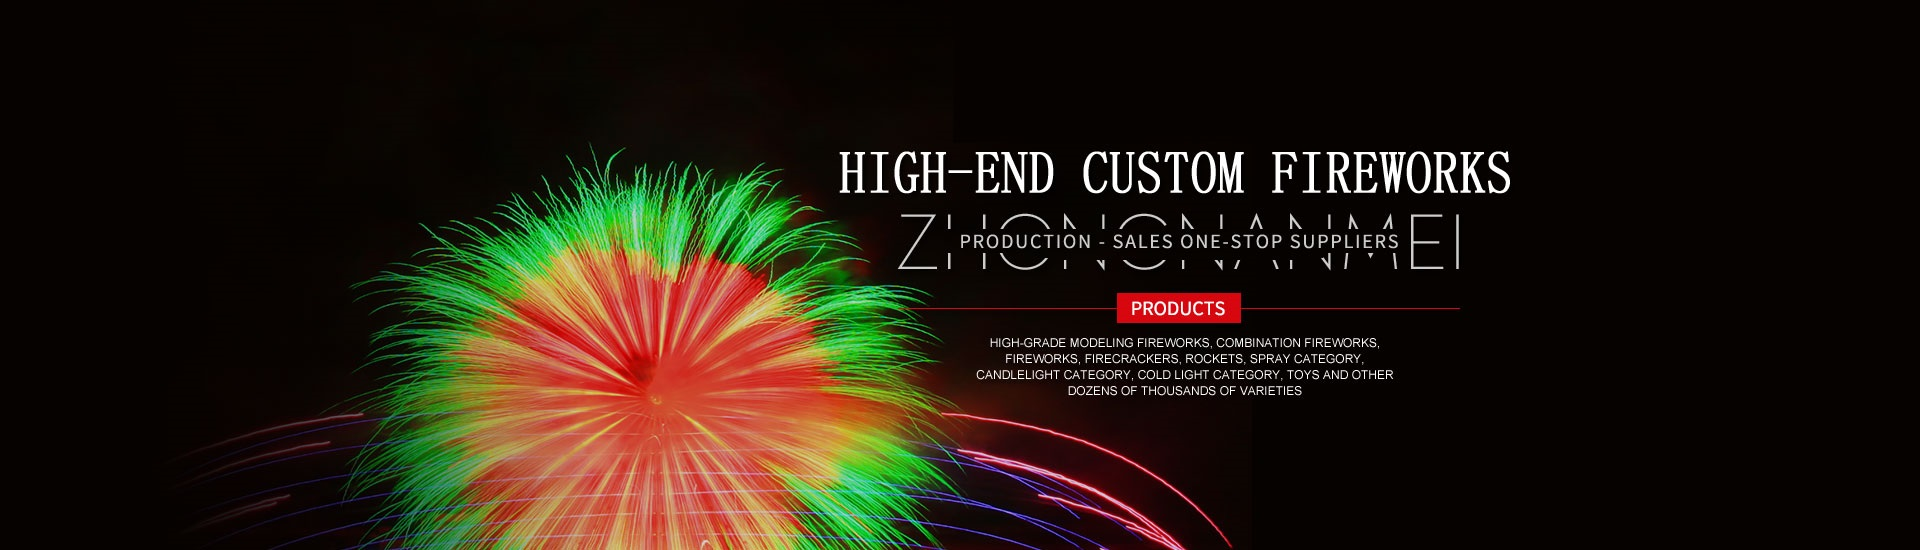 High-end custom fireworks